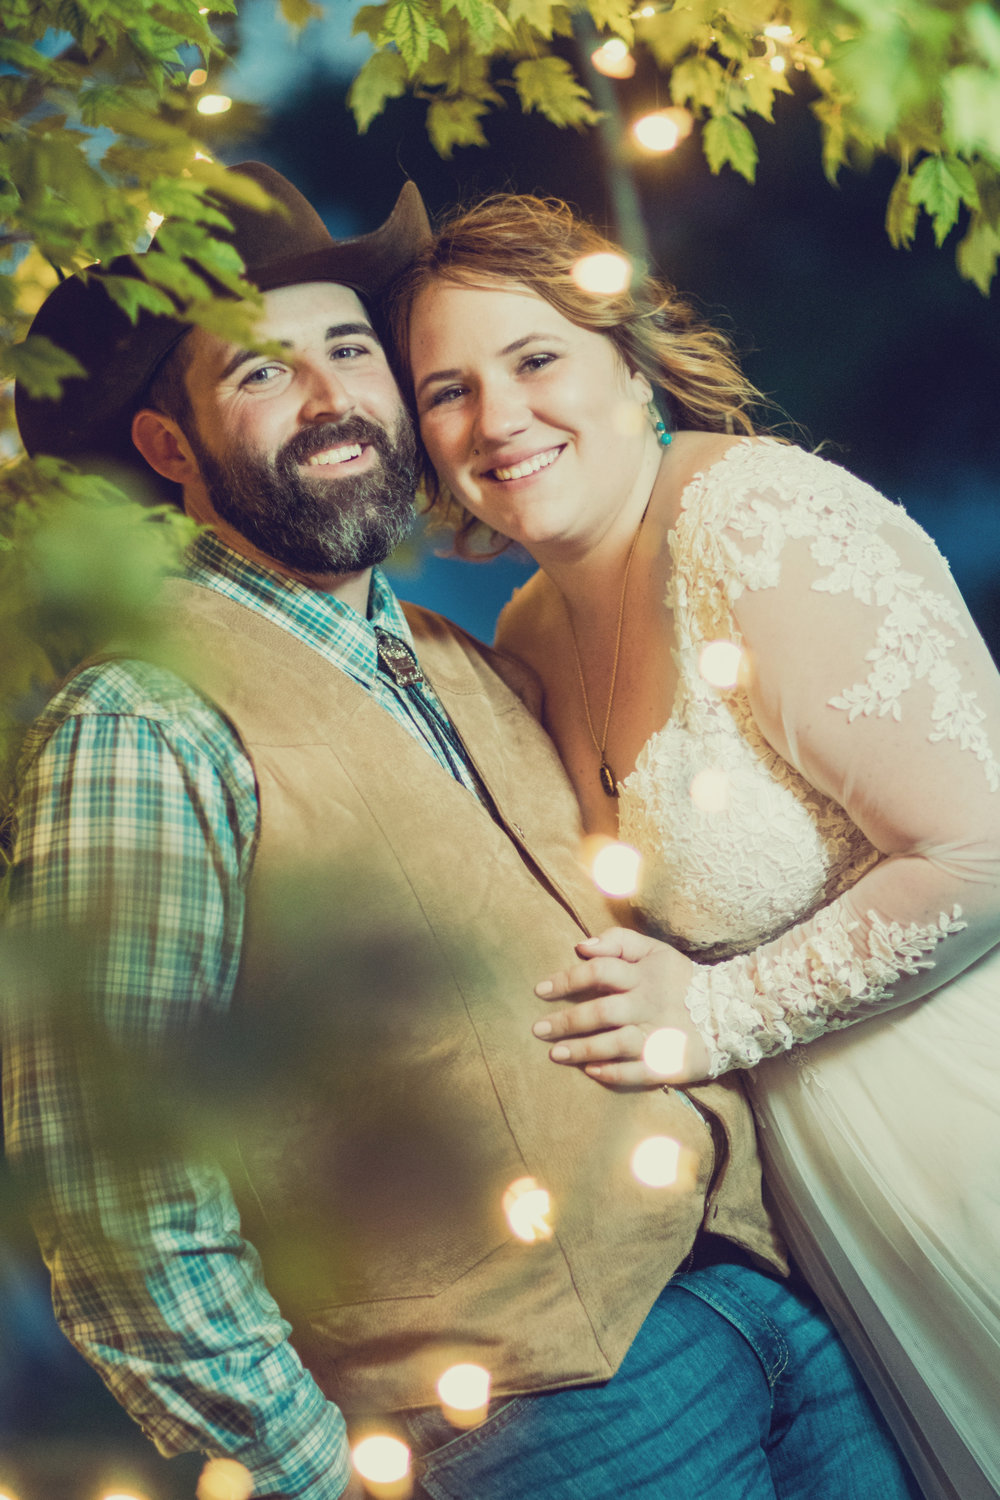 Bride and Groom in Lush Outdoor Wedding Setting